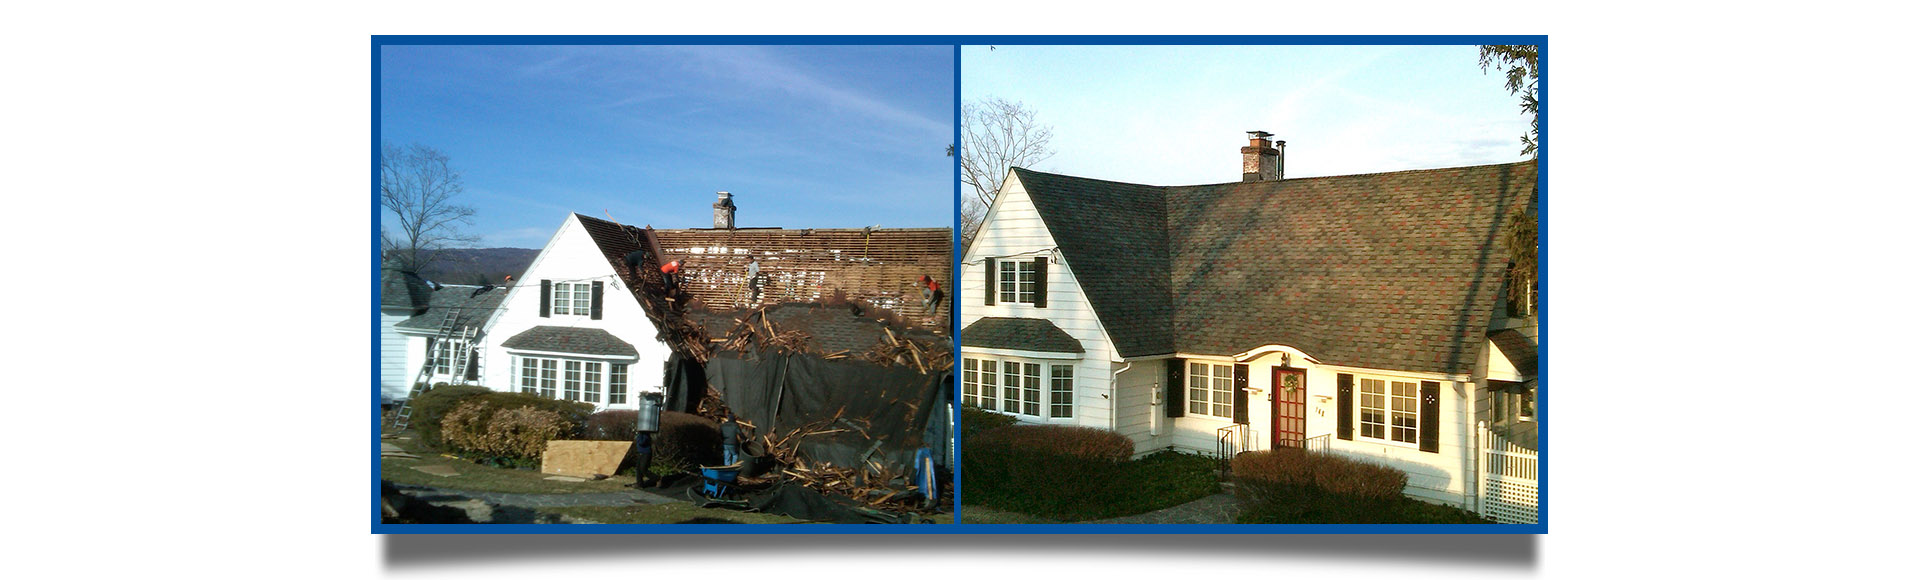 Wayne Nj Roofing Contractors Roof Repair And Installation